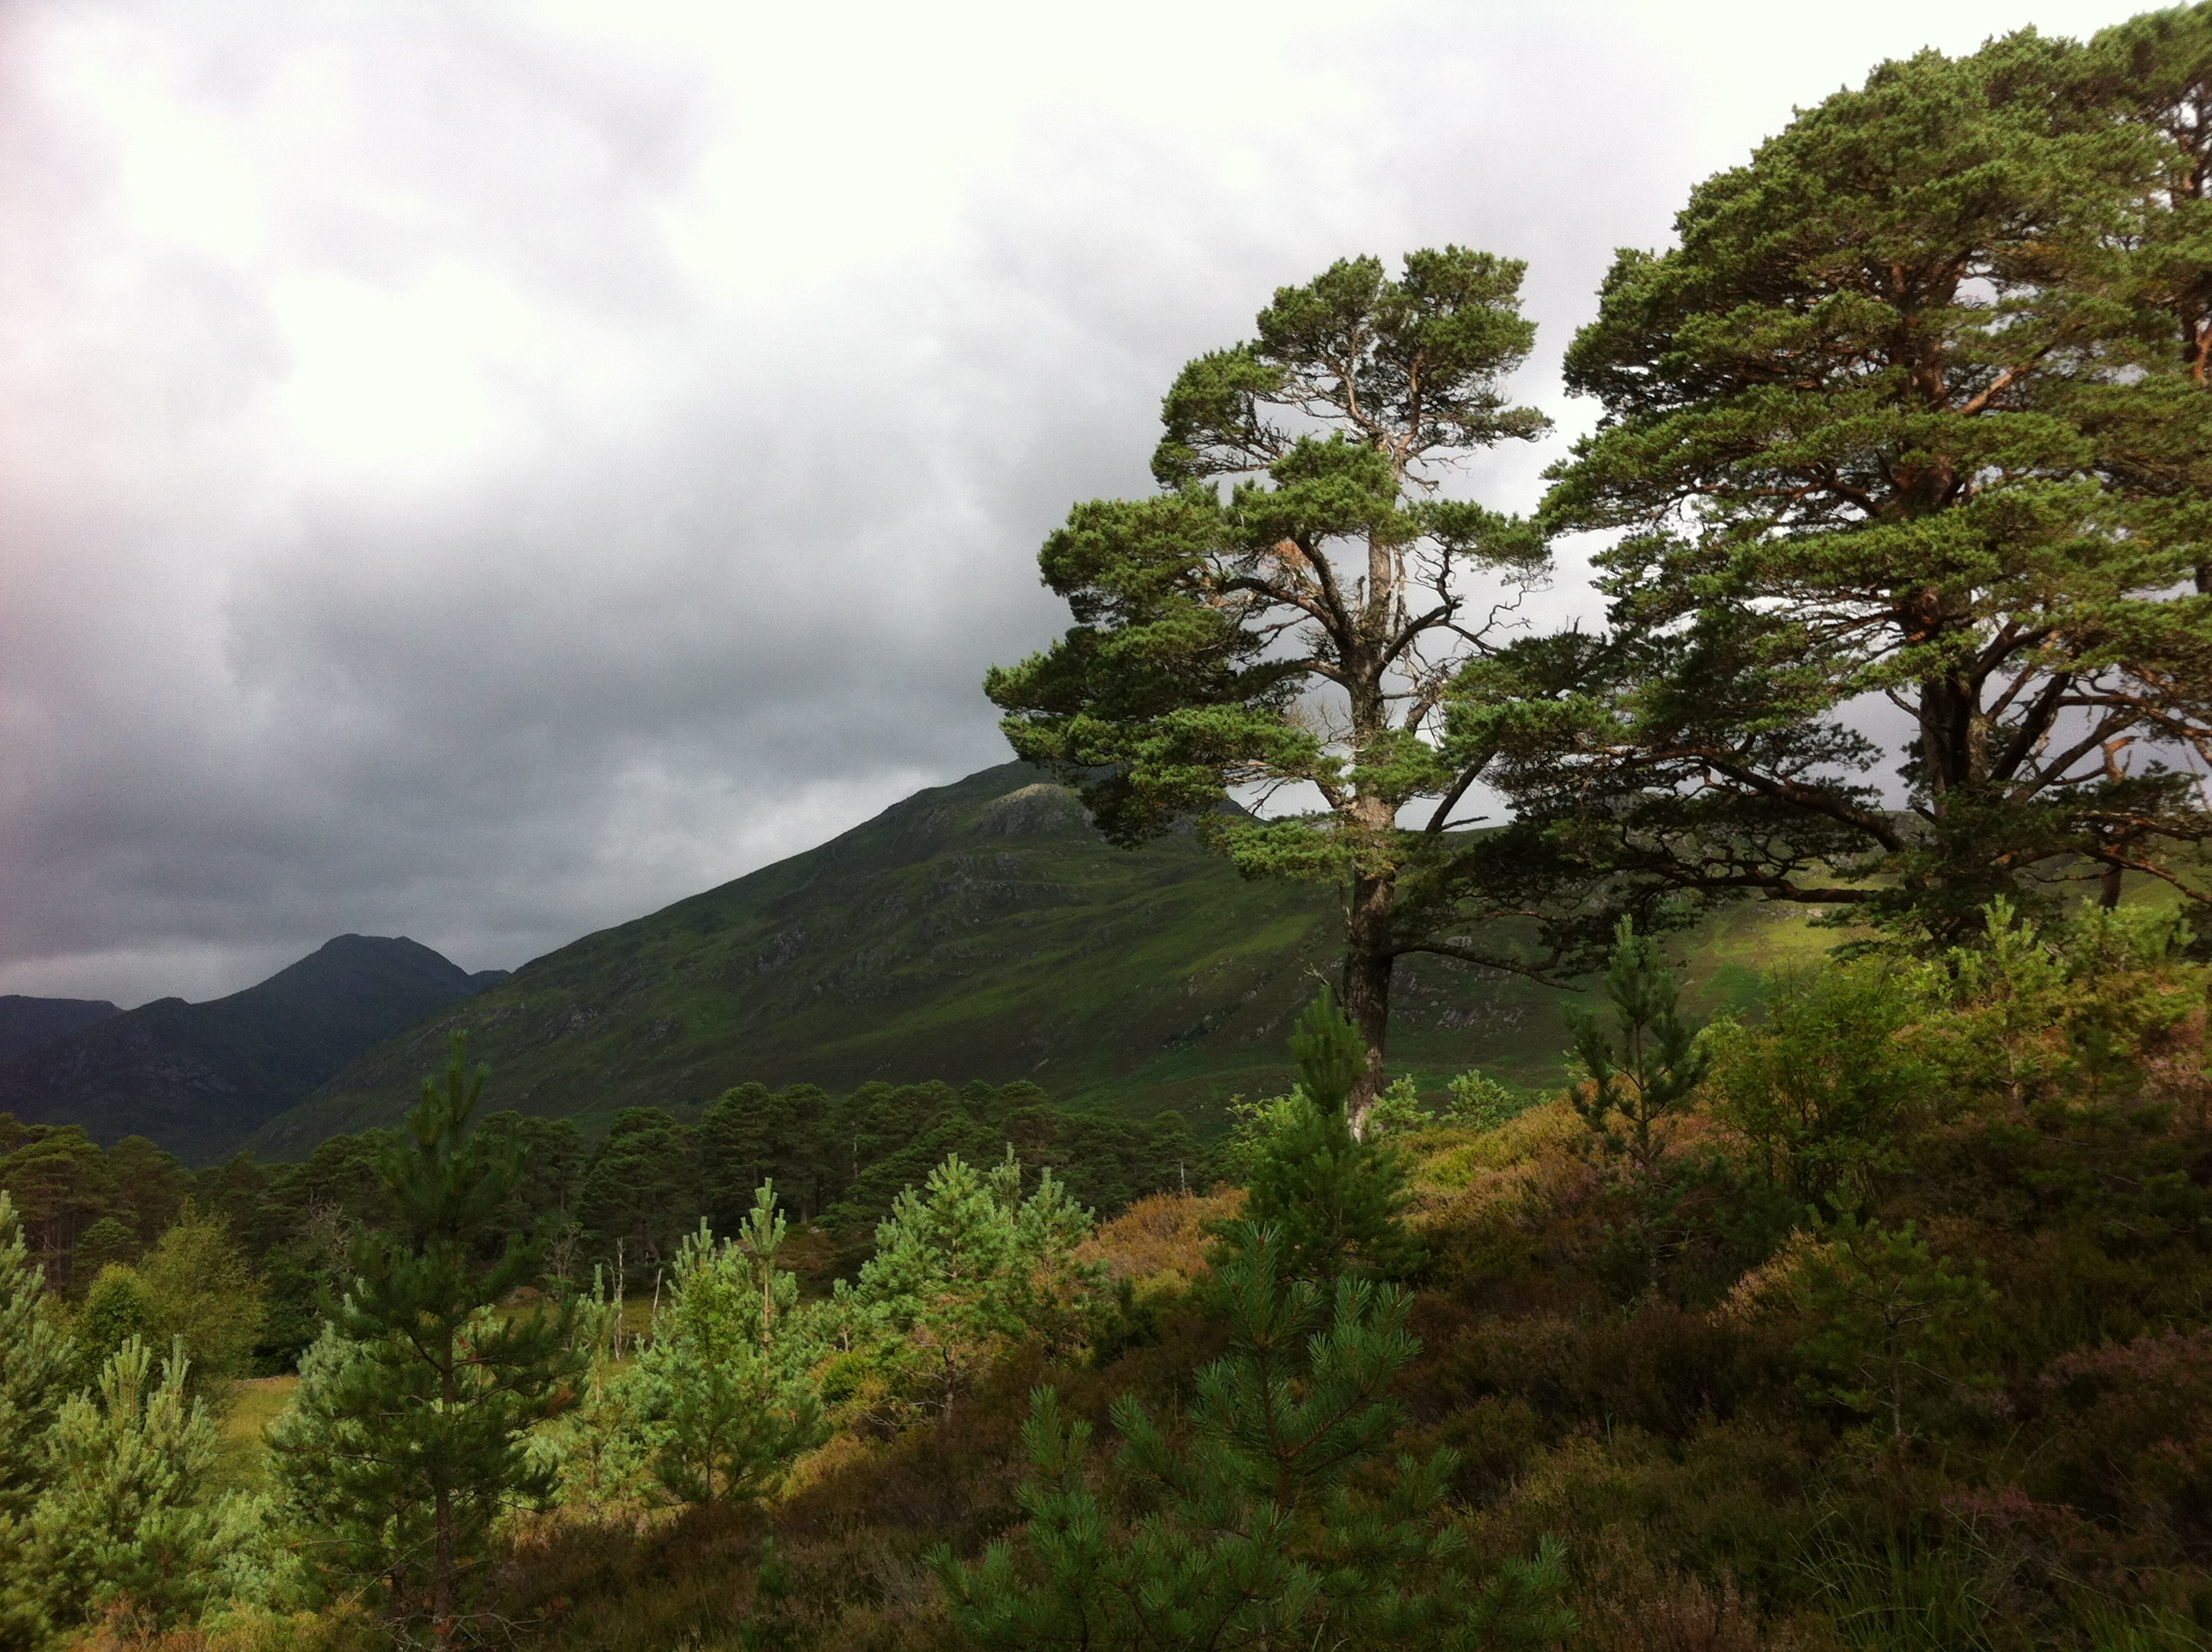 Regenerating trees surrounding mature Scots pine